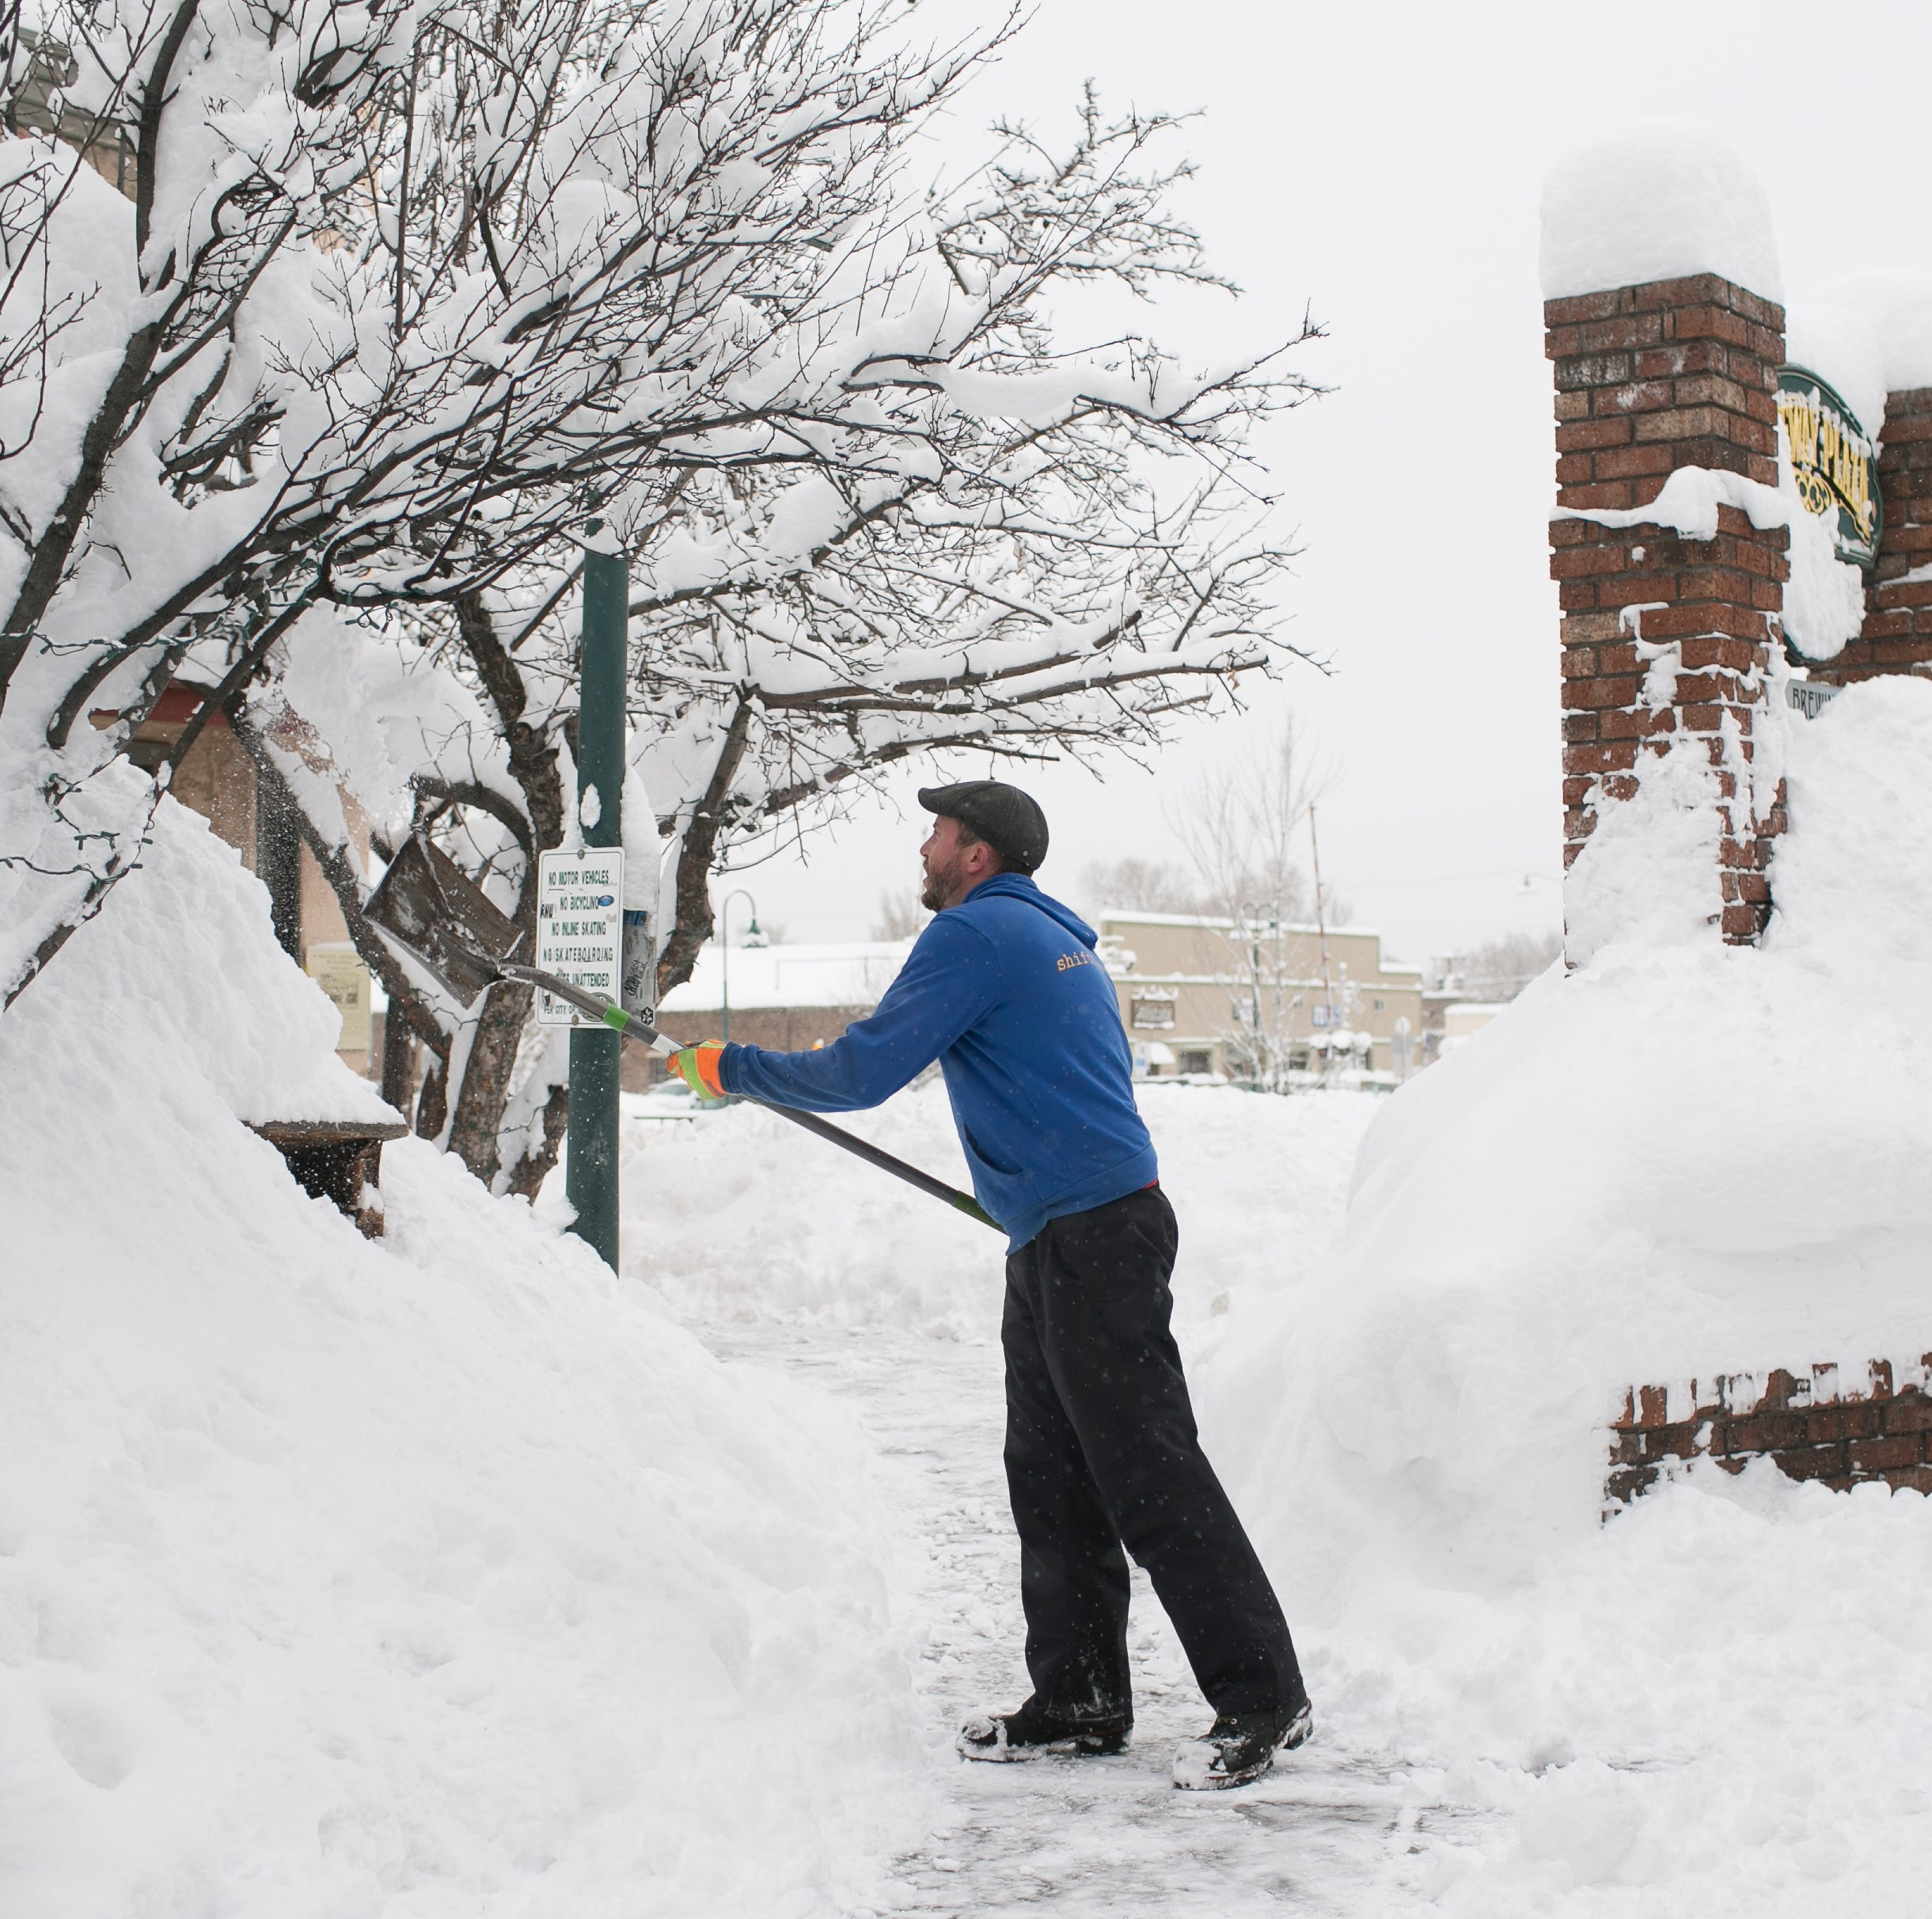 Arizona storm updates: NB I-17 reopens after snowstorm; Flagstaff snow at more than 40 inches so far